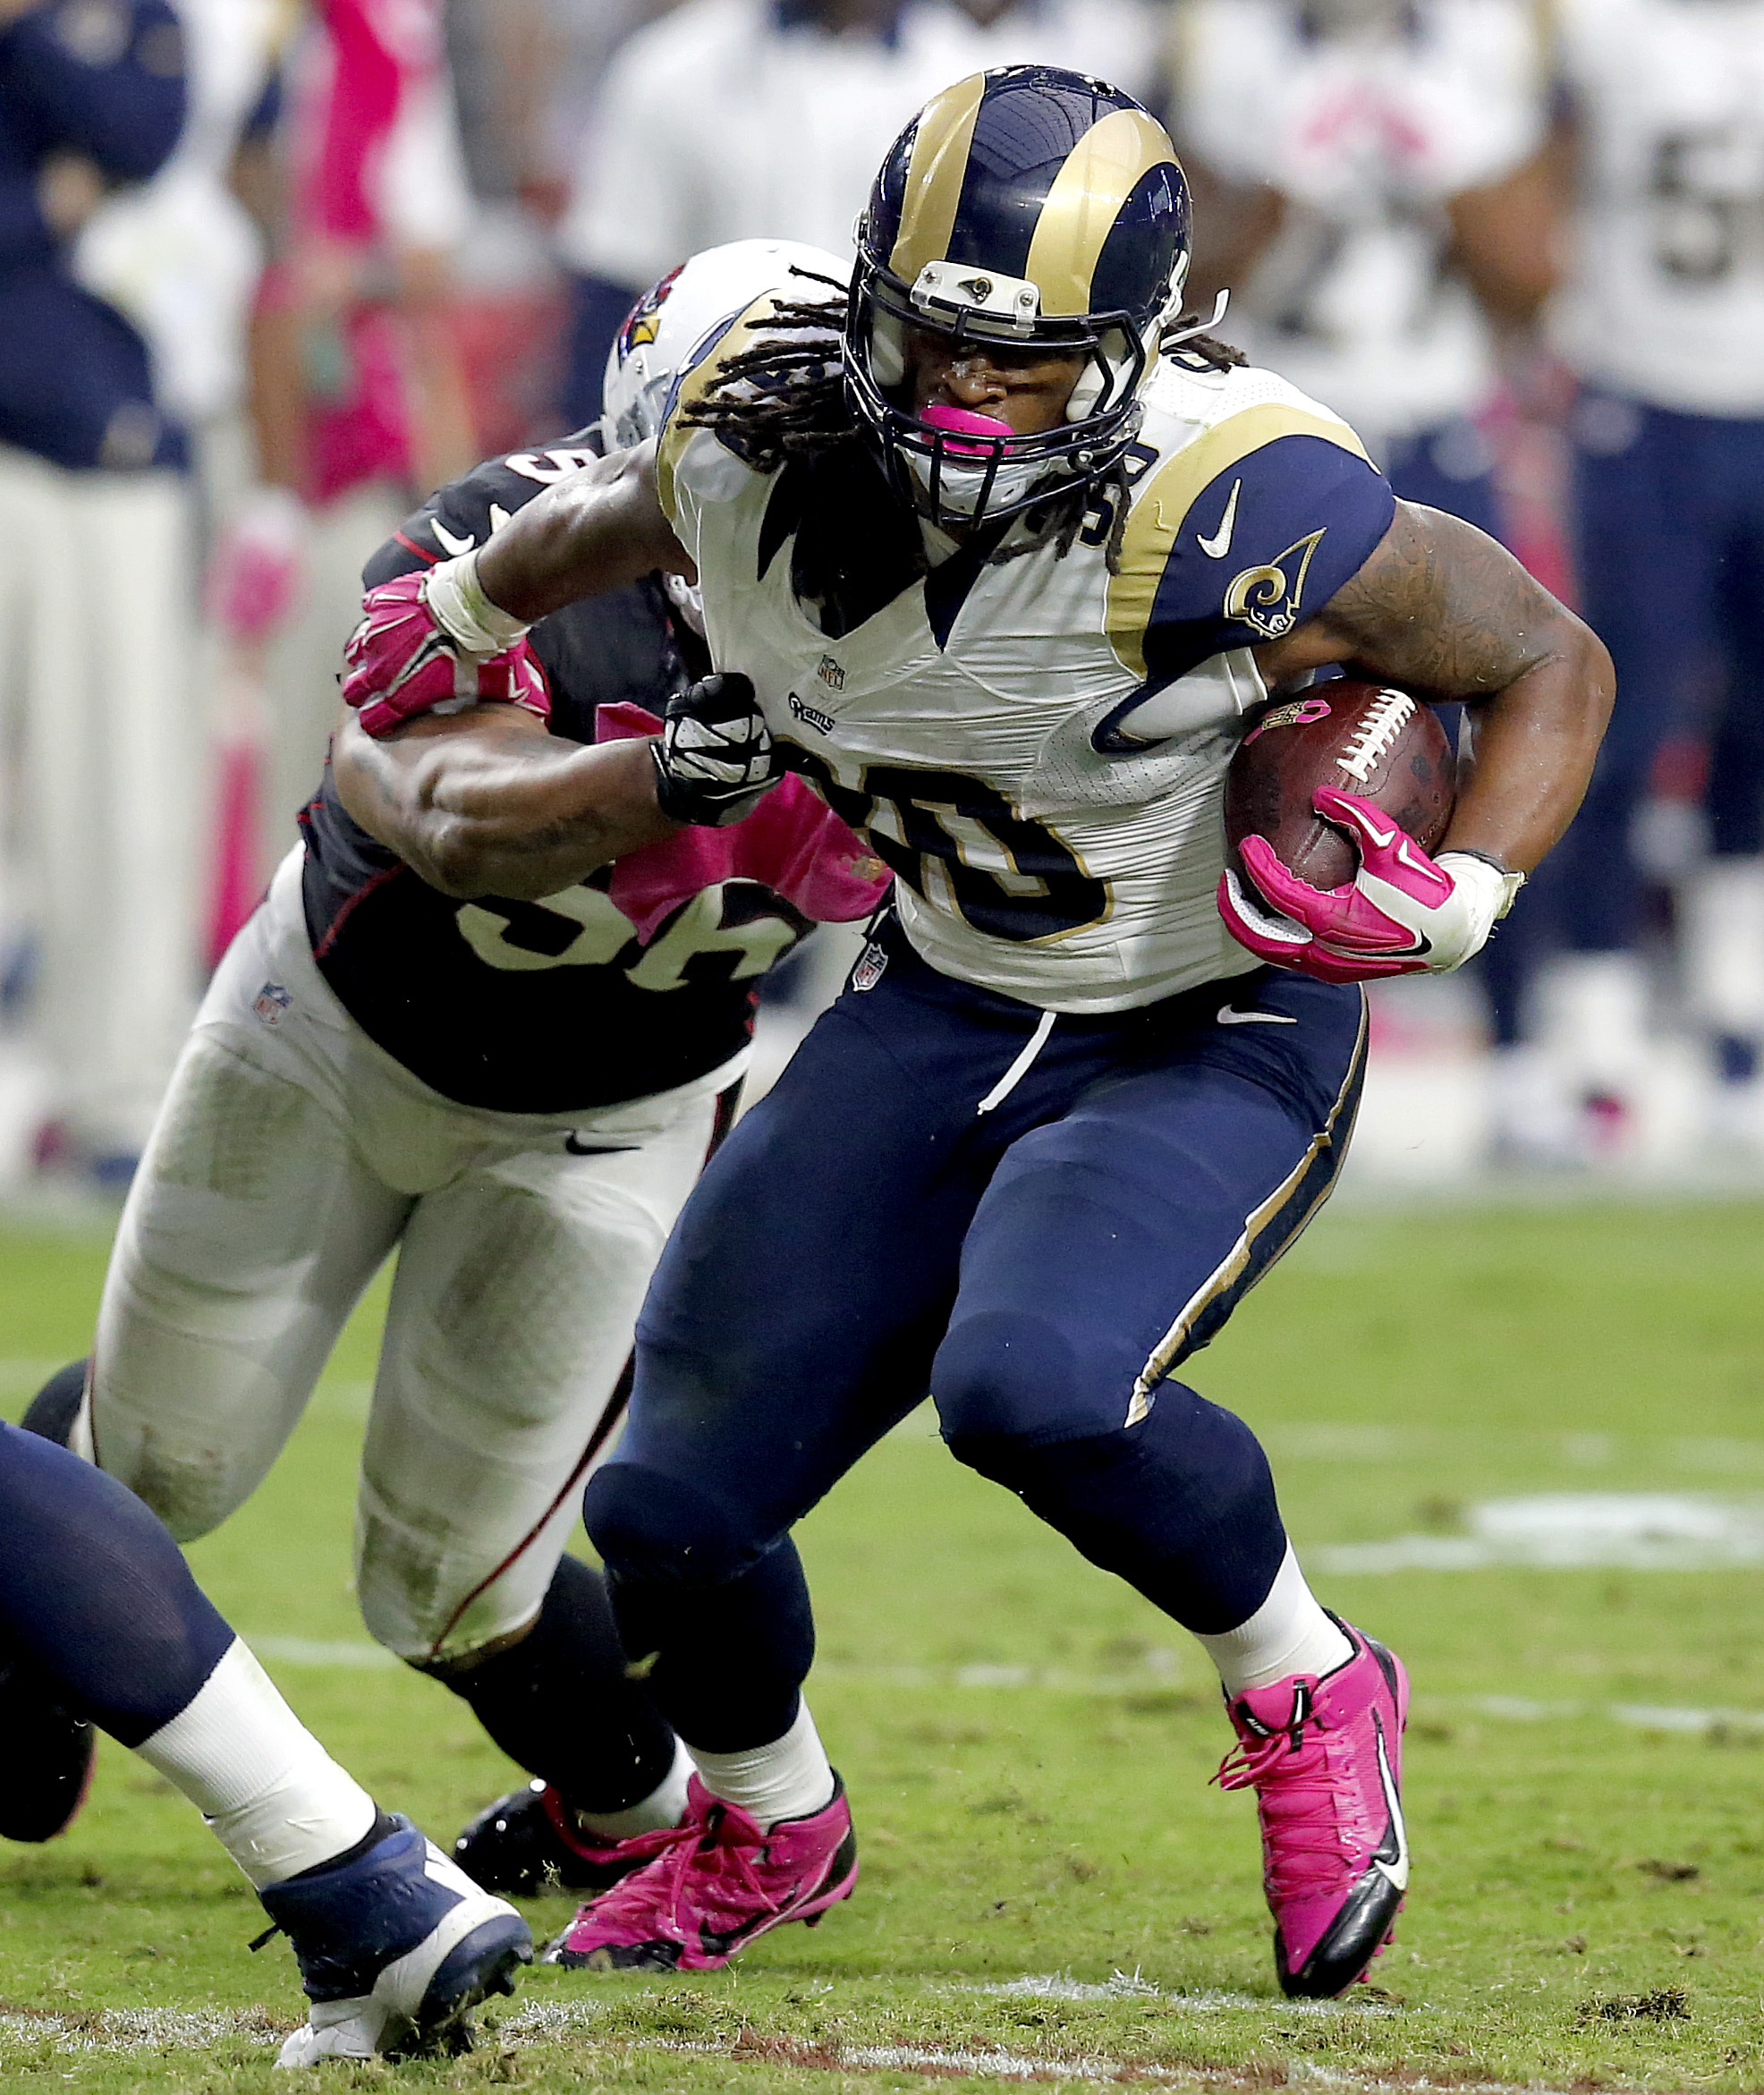 St. Louis Rams running back Todd Gurley (30) eludes the reach of Arizona Cardinals outside linebacker LaMarr Woodley (56) during the second half of an NFL football game, Sunday, Oct. 4, 2015, in Glendale, Ariz. (AP Photo/Rick Scuteri)